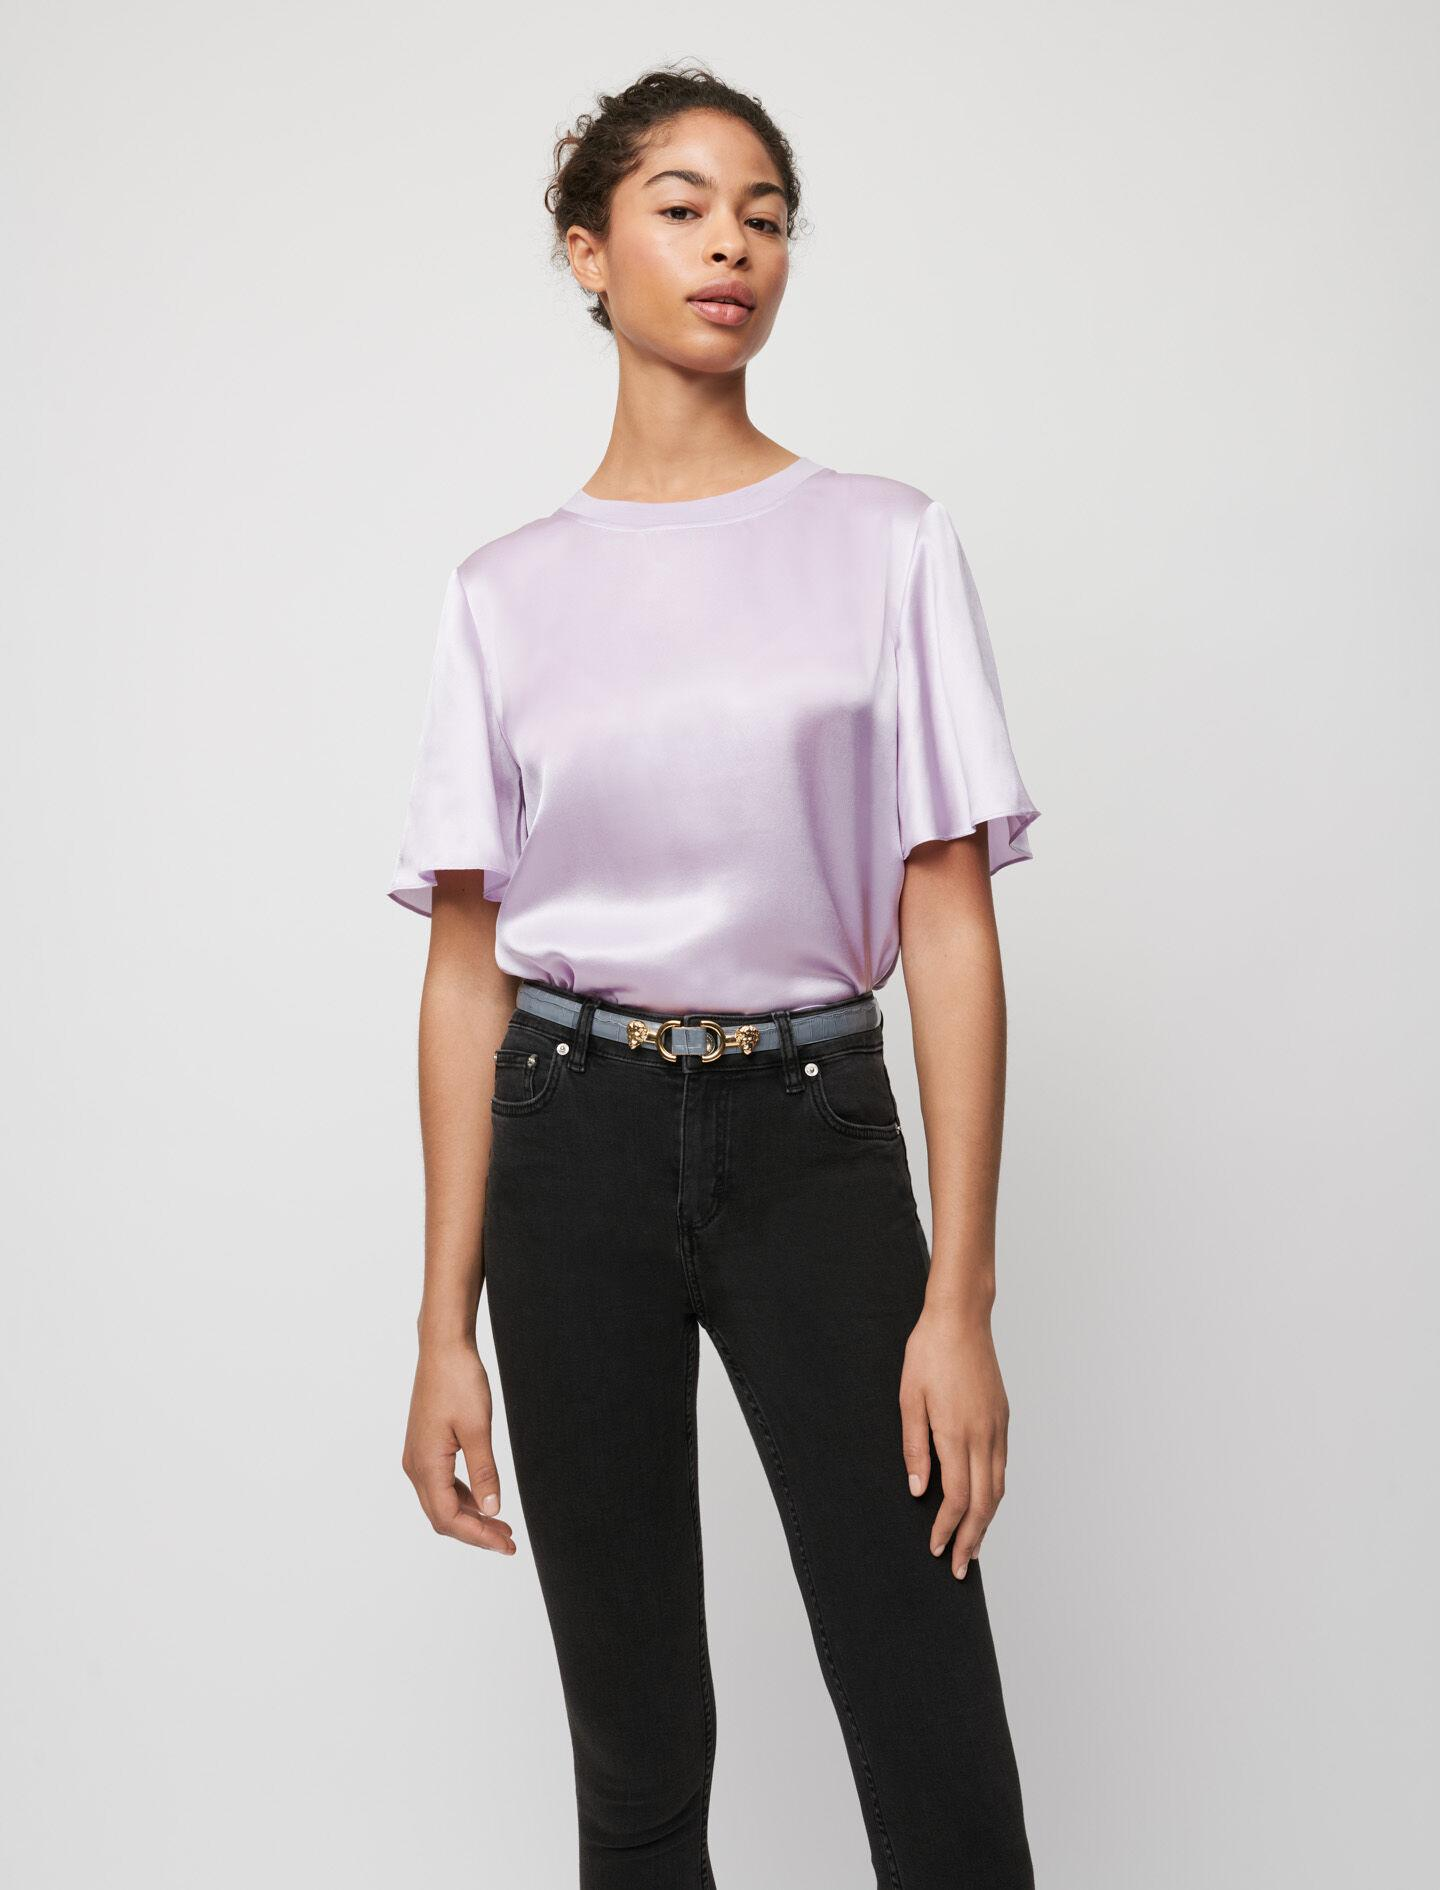 MIXED MATERIAL SILK AND COTTON T-SHIRT